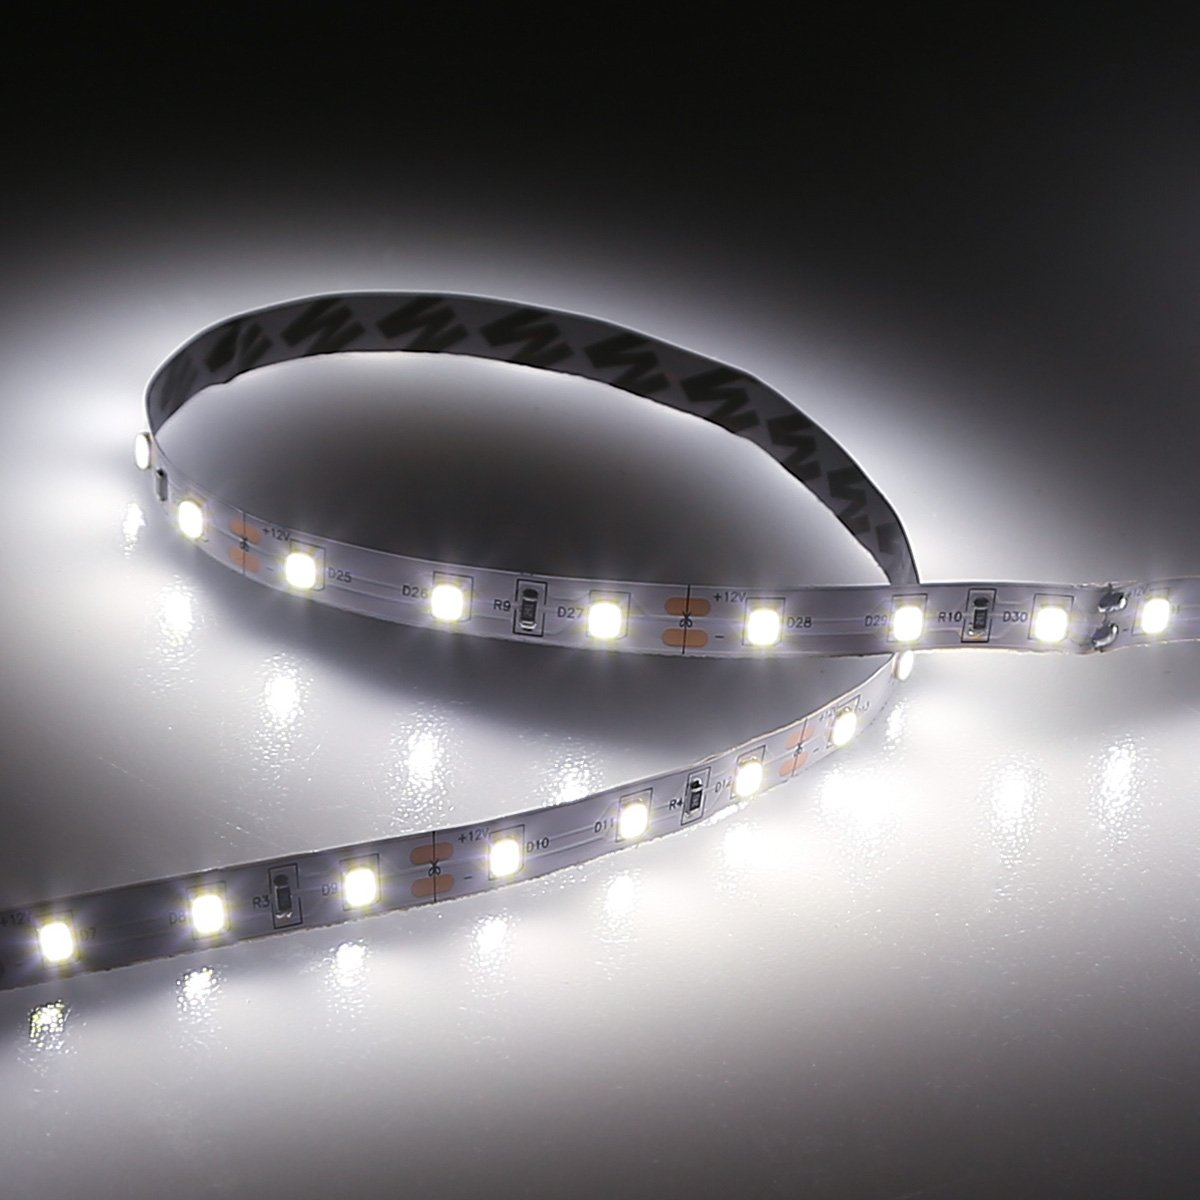 Amazon.com: LE 12V LED Strip Light, Flexible, Daylight White, SMD 2835, 5m  Tape Light For Home, Kitchen, Party, Christmas And More, Non Waterproof:  Home ...